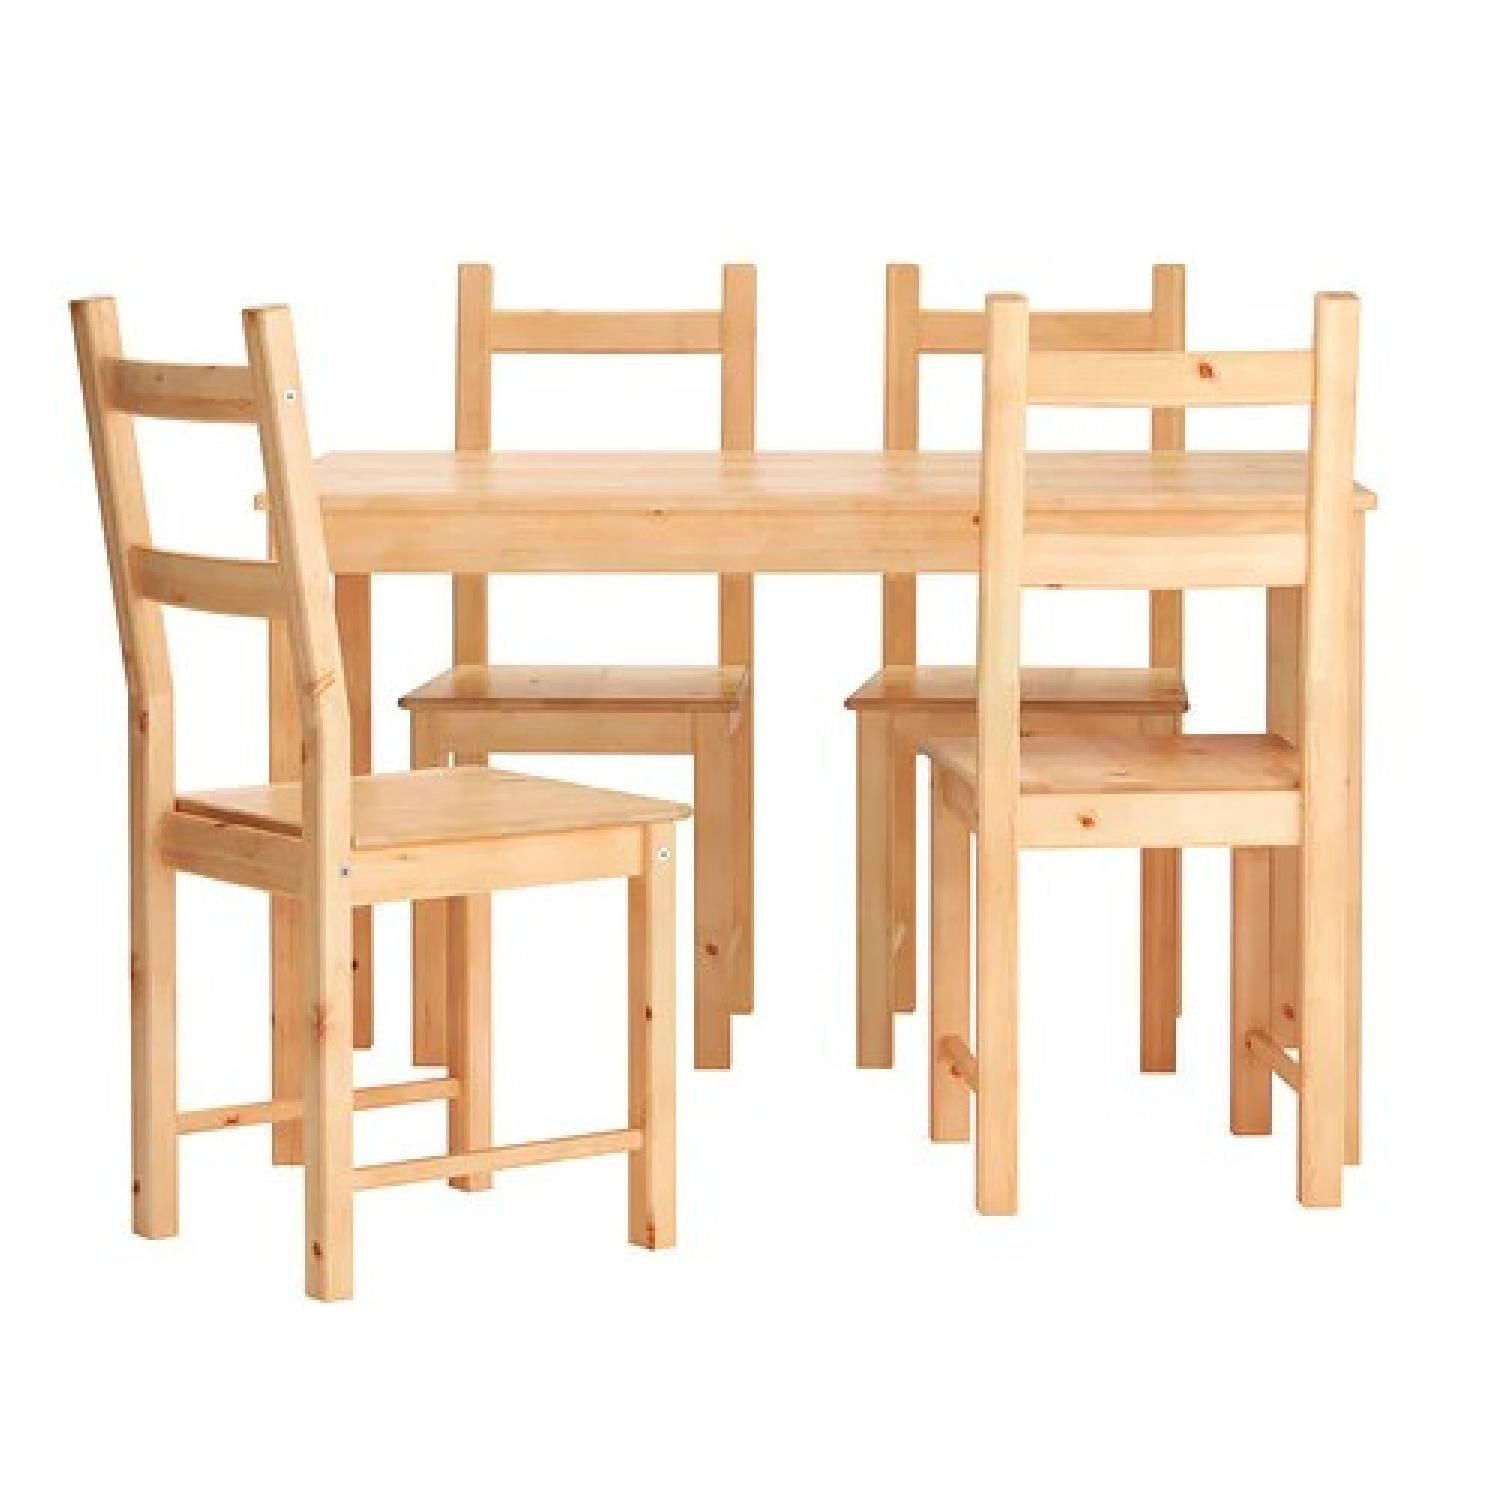 Ikea Ingo Natural Pinewood Dining Table w/ 4 Chairs - image-0